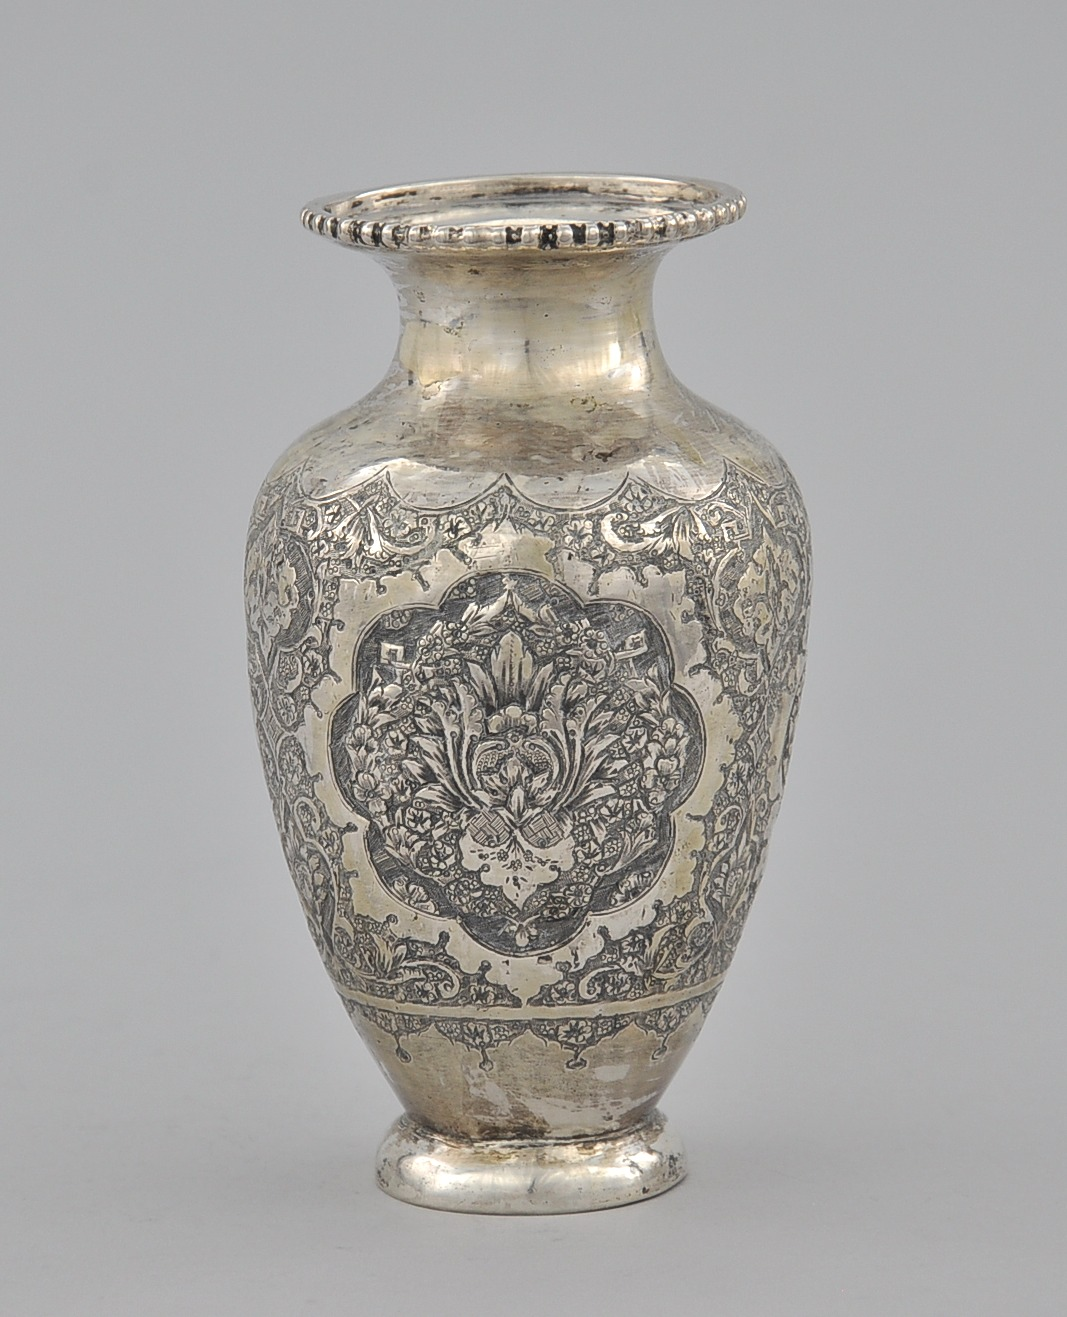 An Antique Persian Silver Vase Ca Early 20th Century 11